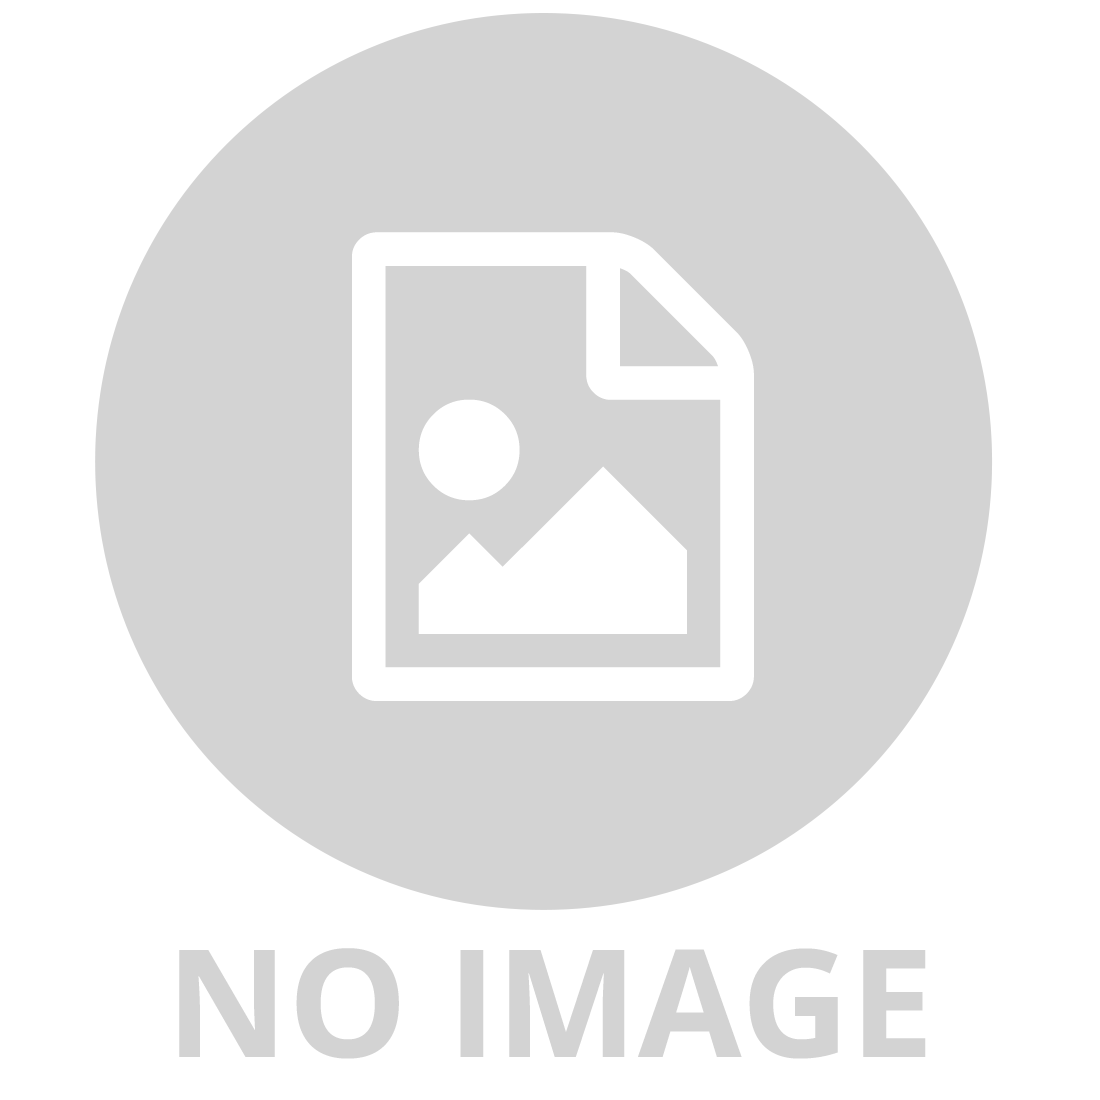 WOODEN MAGNETIC 3 IN 1 PUZZLE